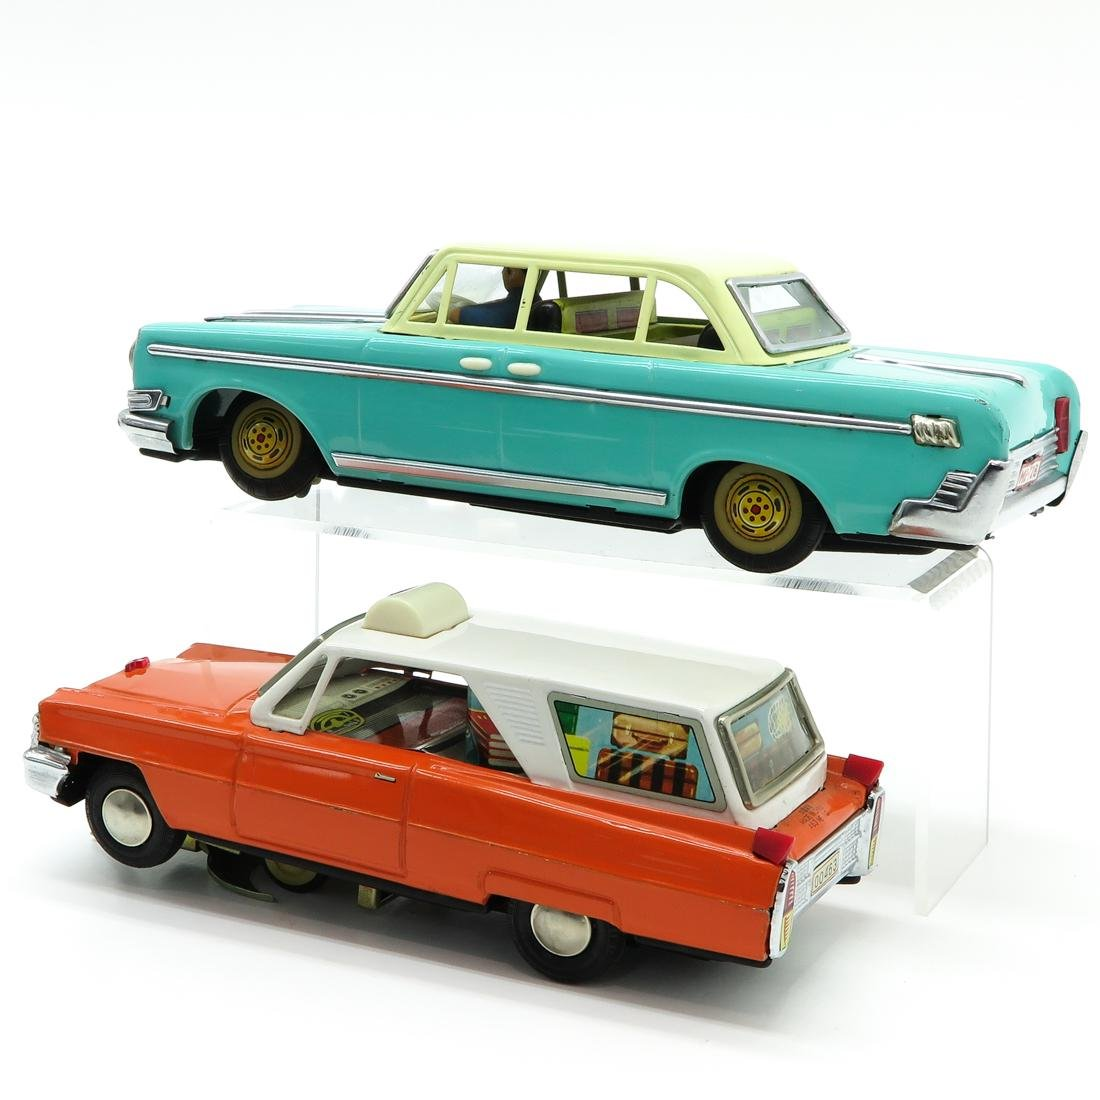 Lot of 2 Vintage Toy Cars - 3